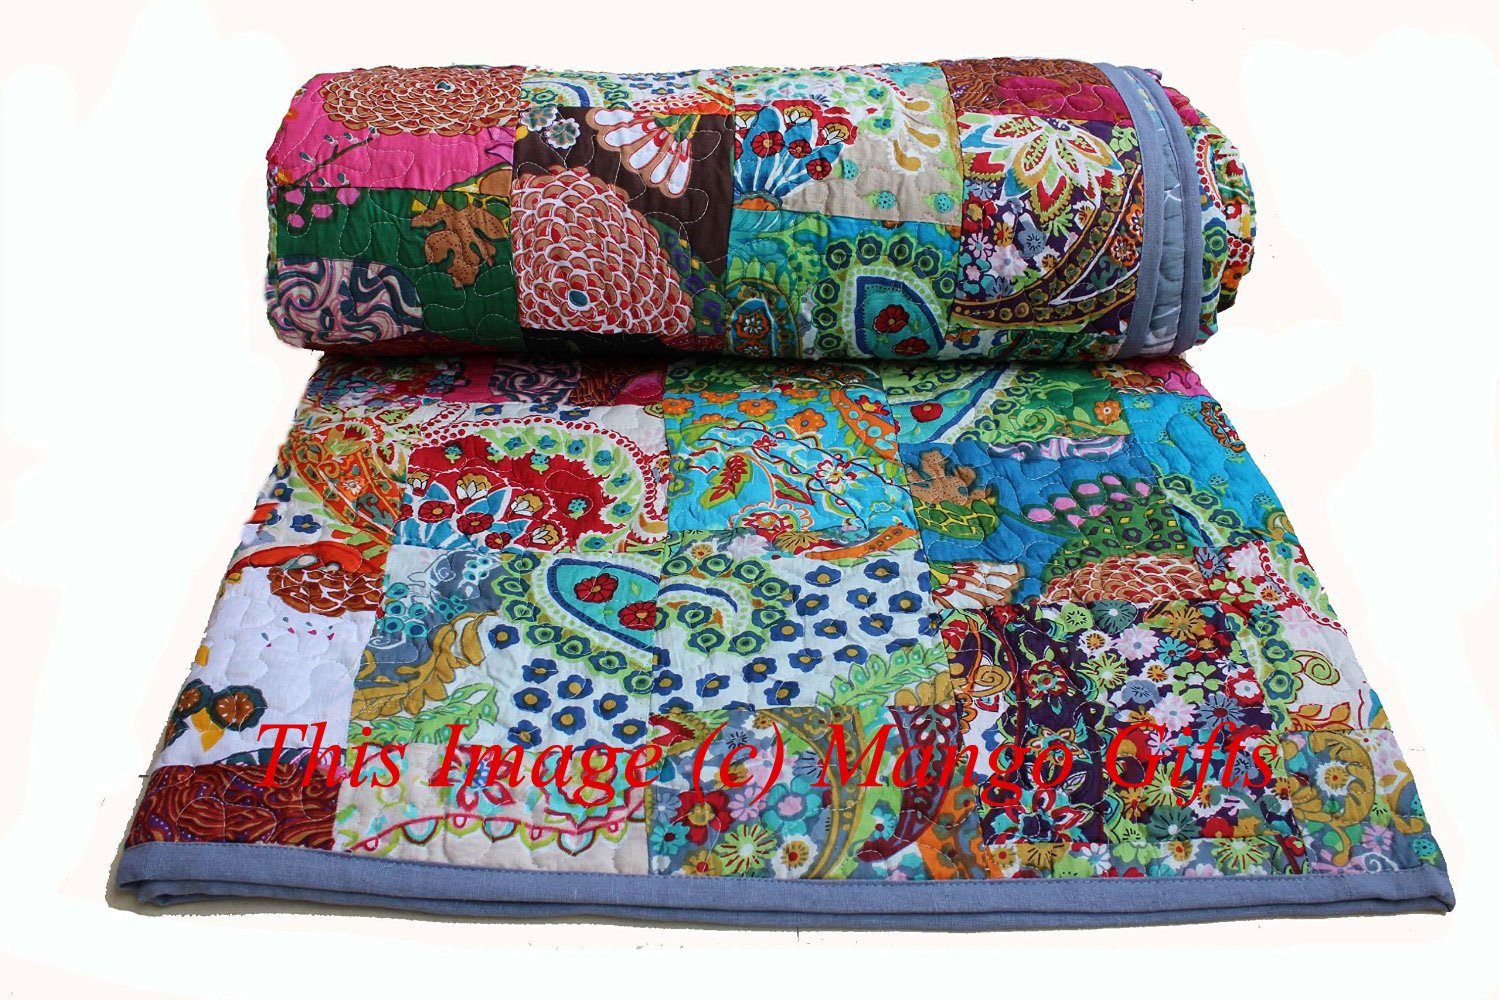 "Indian Quilt Pure Cotton Premium Gudri (Quilt), Floral Print, King Size, Patch Work Quilt, King Size Bedspread 90"" X 110"" King Size By Mango Gifts"